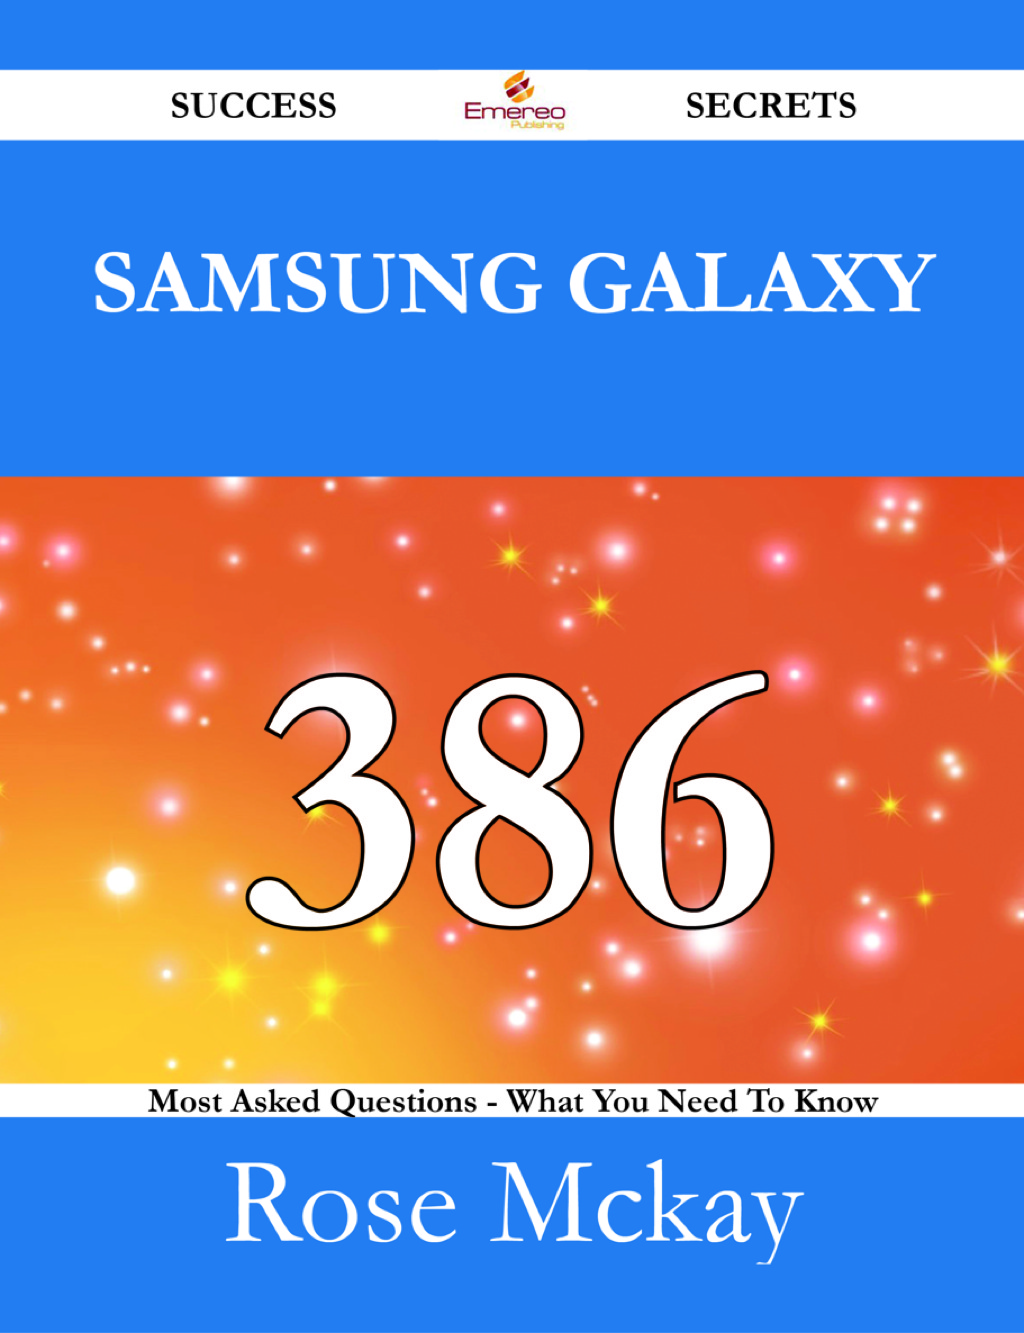 Samsung Galaxy 386 Success Secrets - 386 Most Asked Questions On Samsung Galaxy - What You Need To Know (ebook)